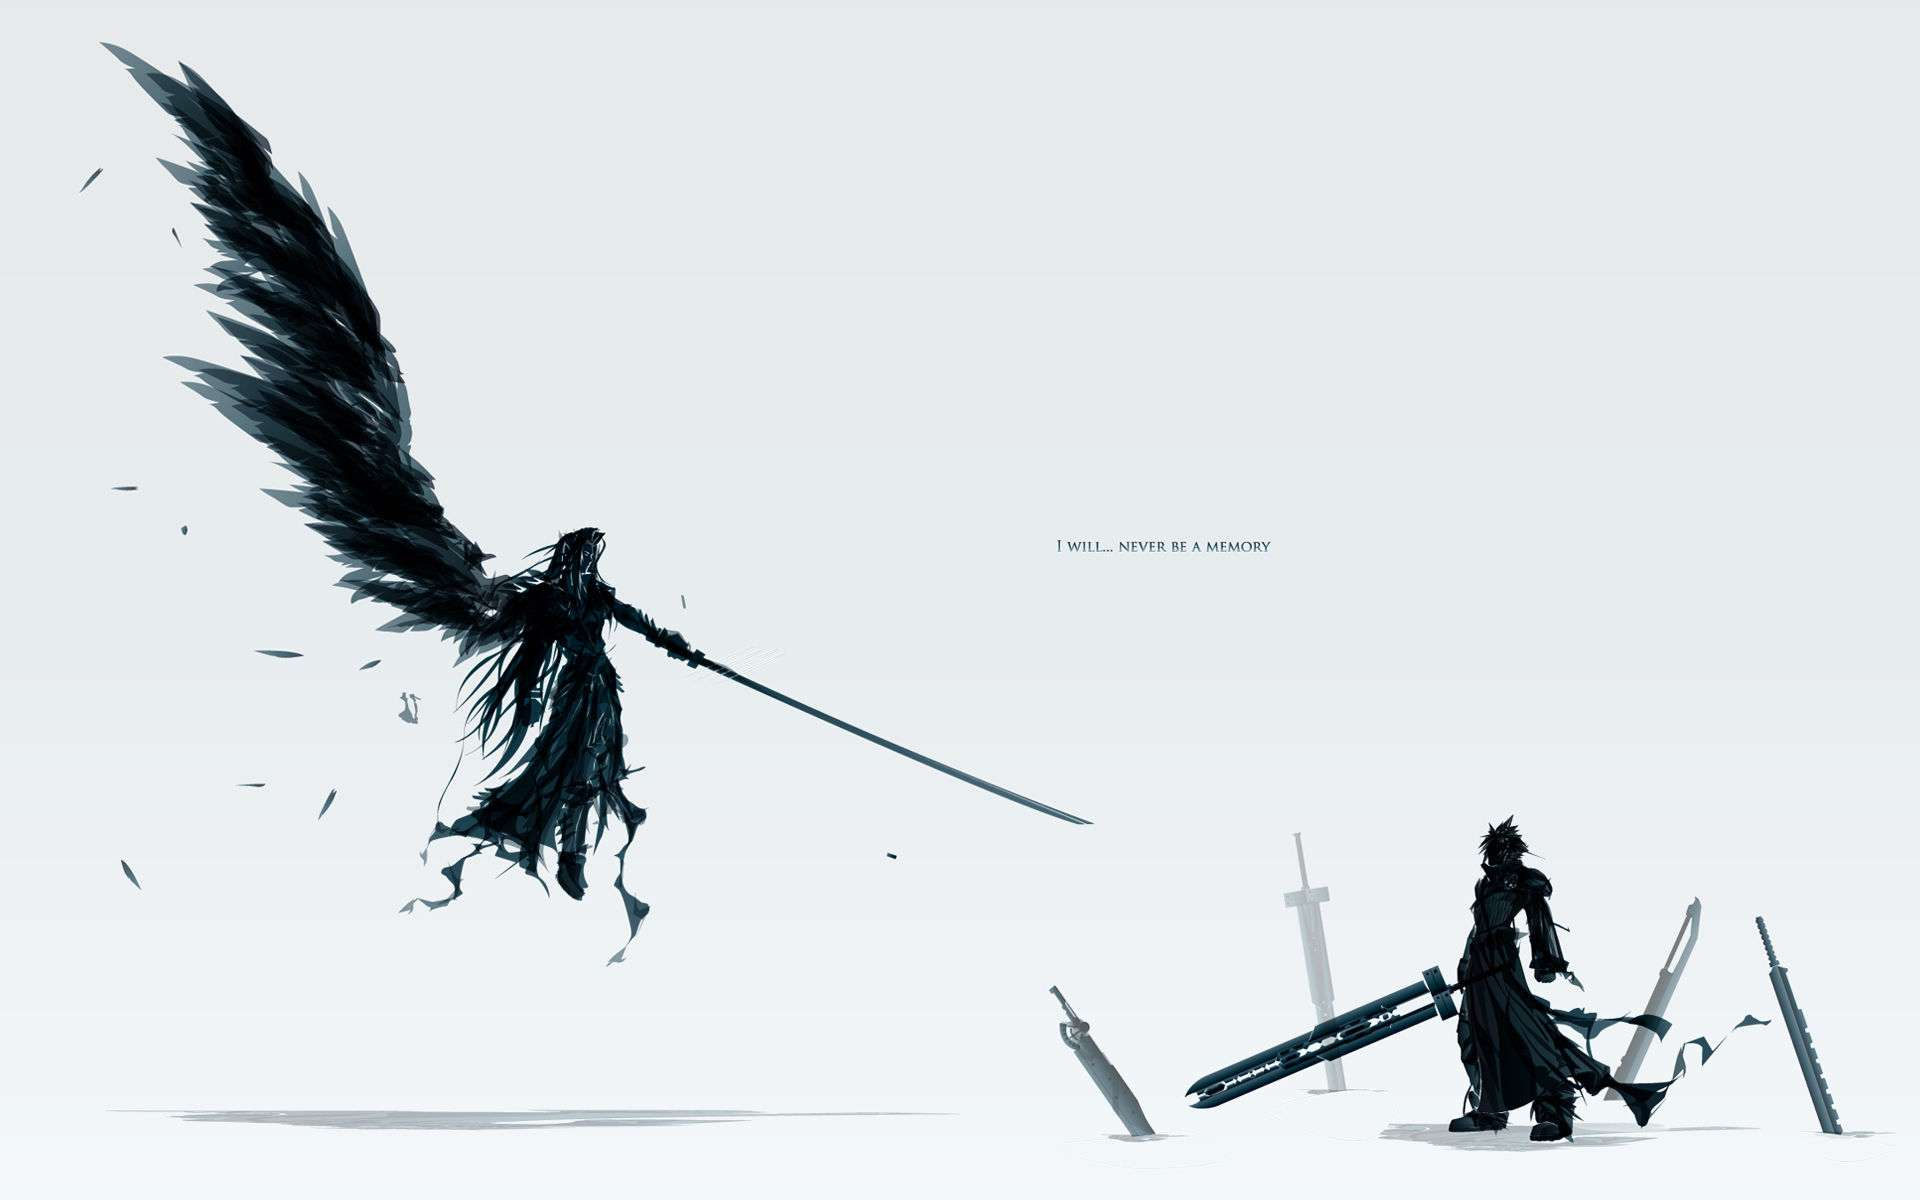 Final Fantasy Video Game Wallpaper 010